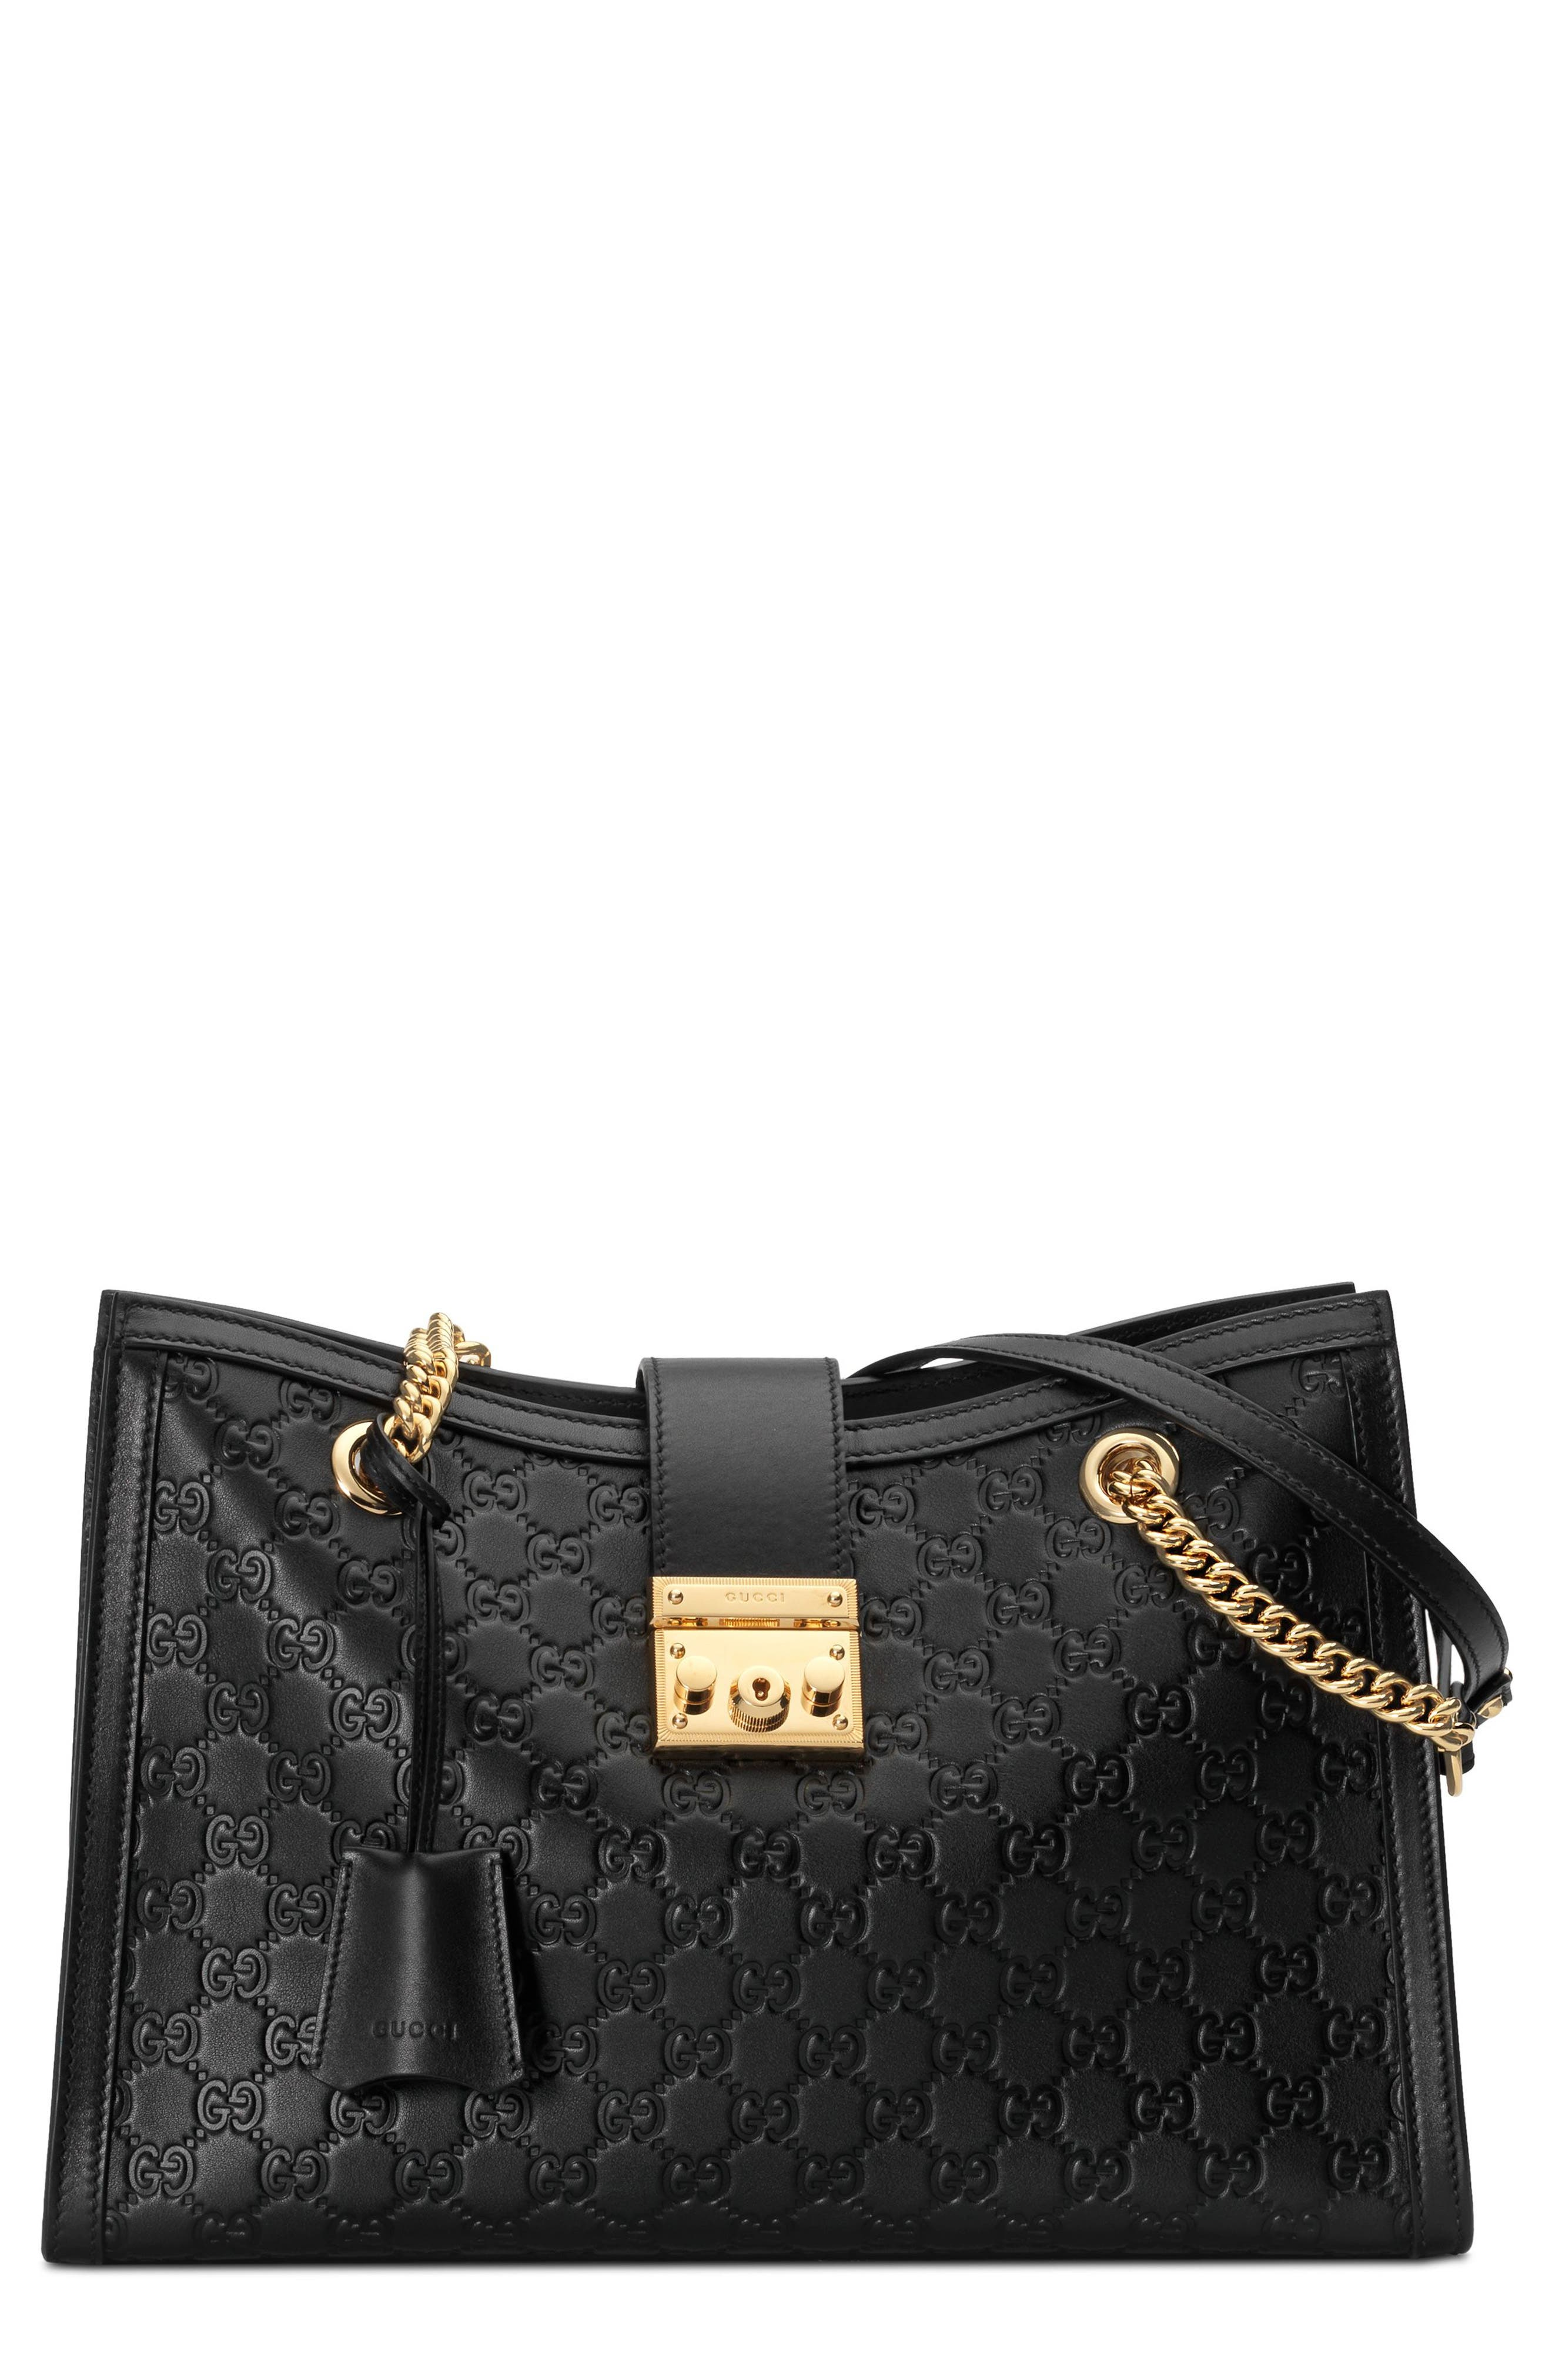 add6e70a759405 Gucci Tote Bags for Women: Leather, Coated Canvas, & Neoprene | Nordstrom